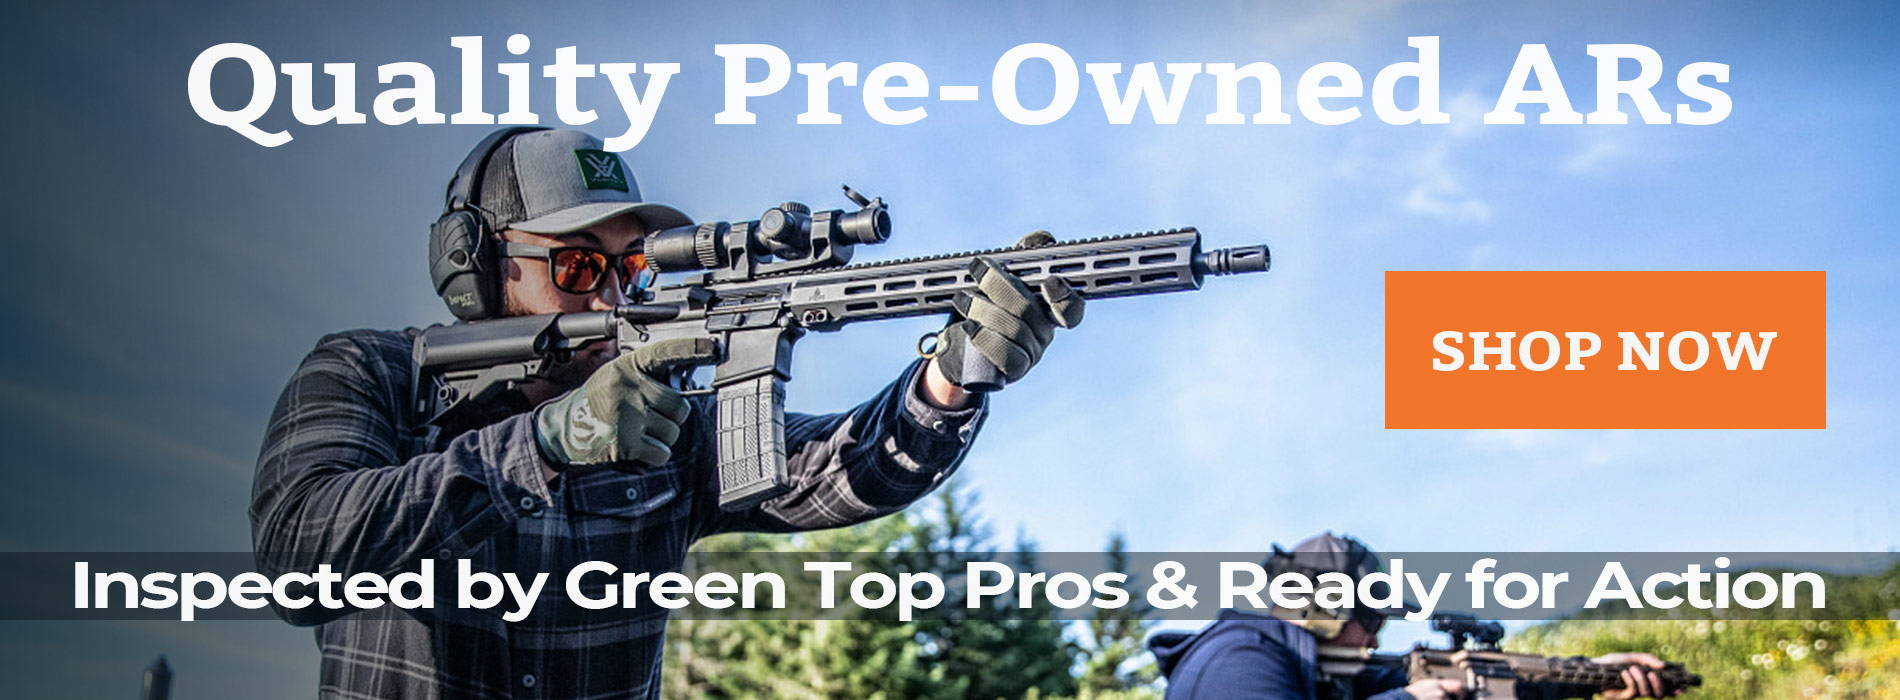 Shop All Pre-Owned ARs in Stock - HURRY, These Go Quickly!